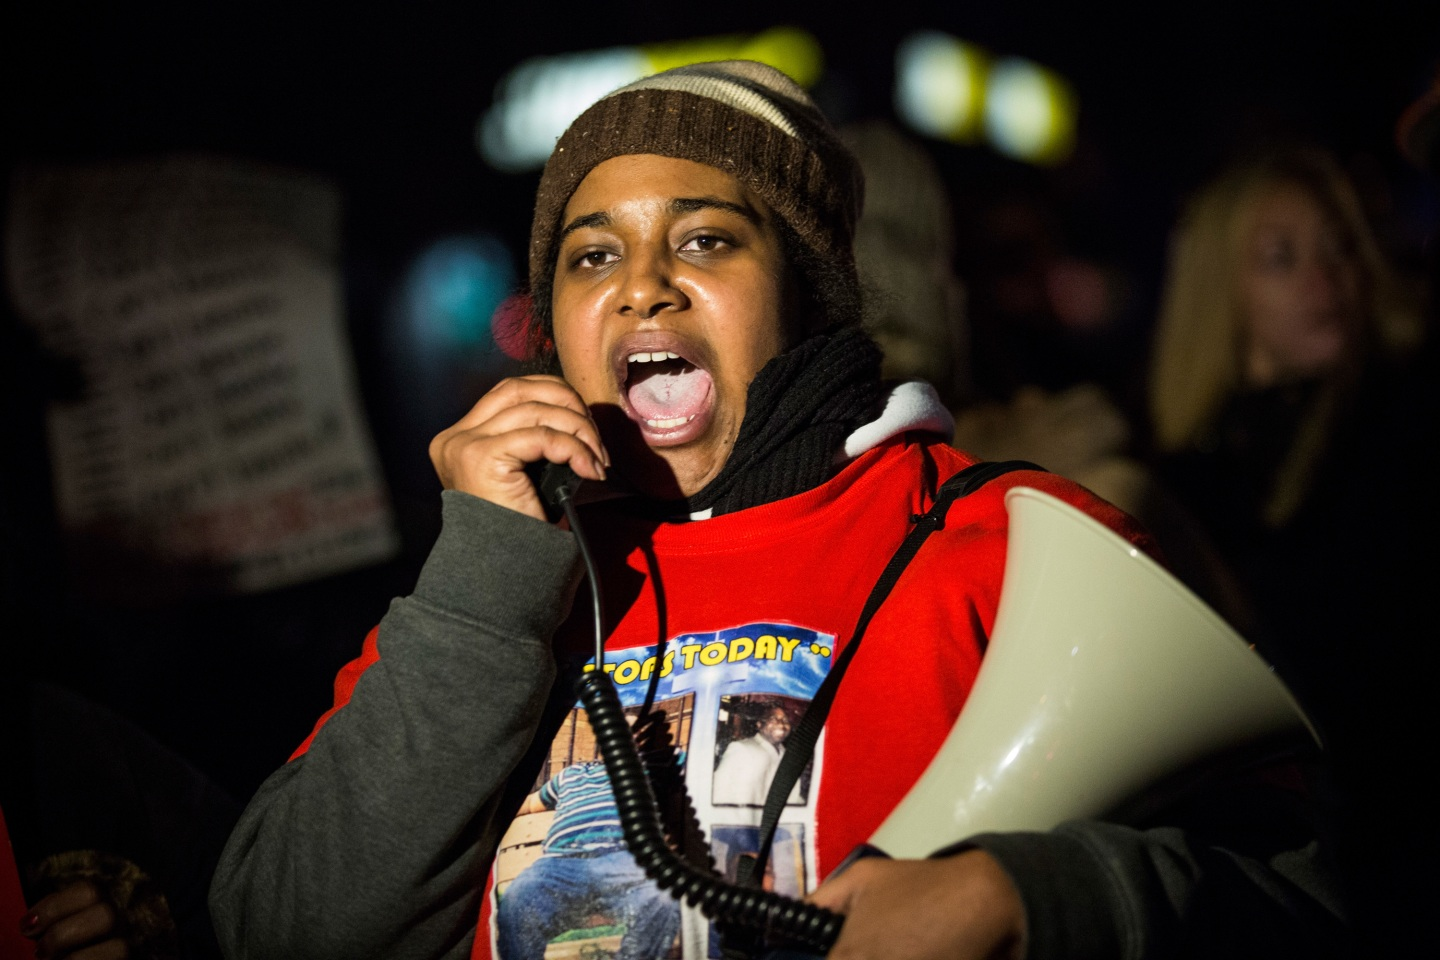 Erica Garner Responds To The Shakeup In The D.O.J. Investigation Of Her Father's Death